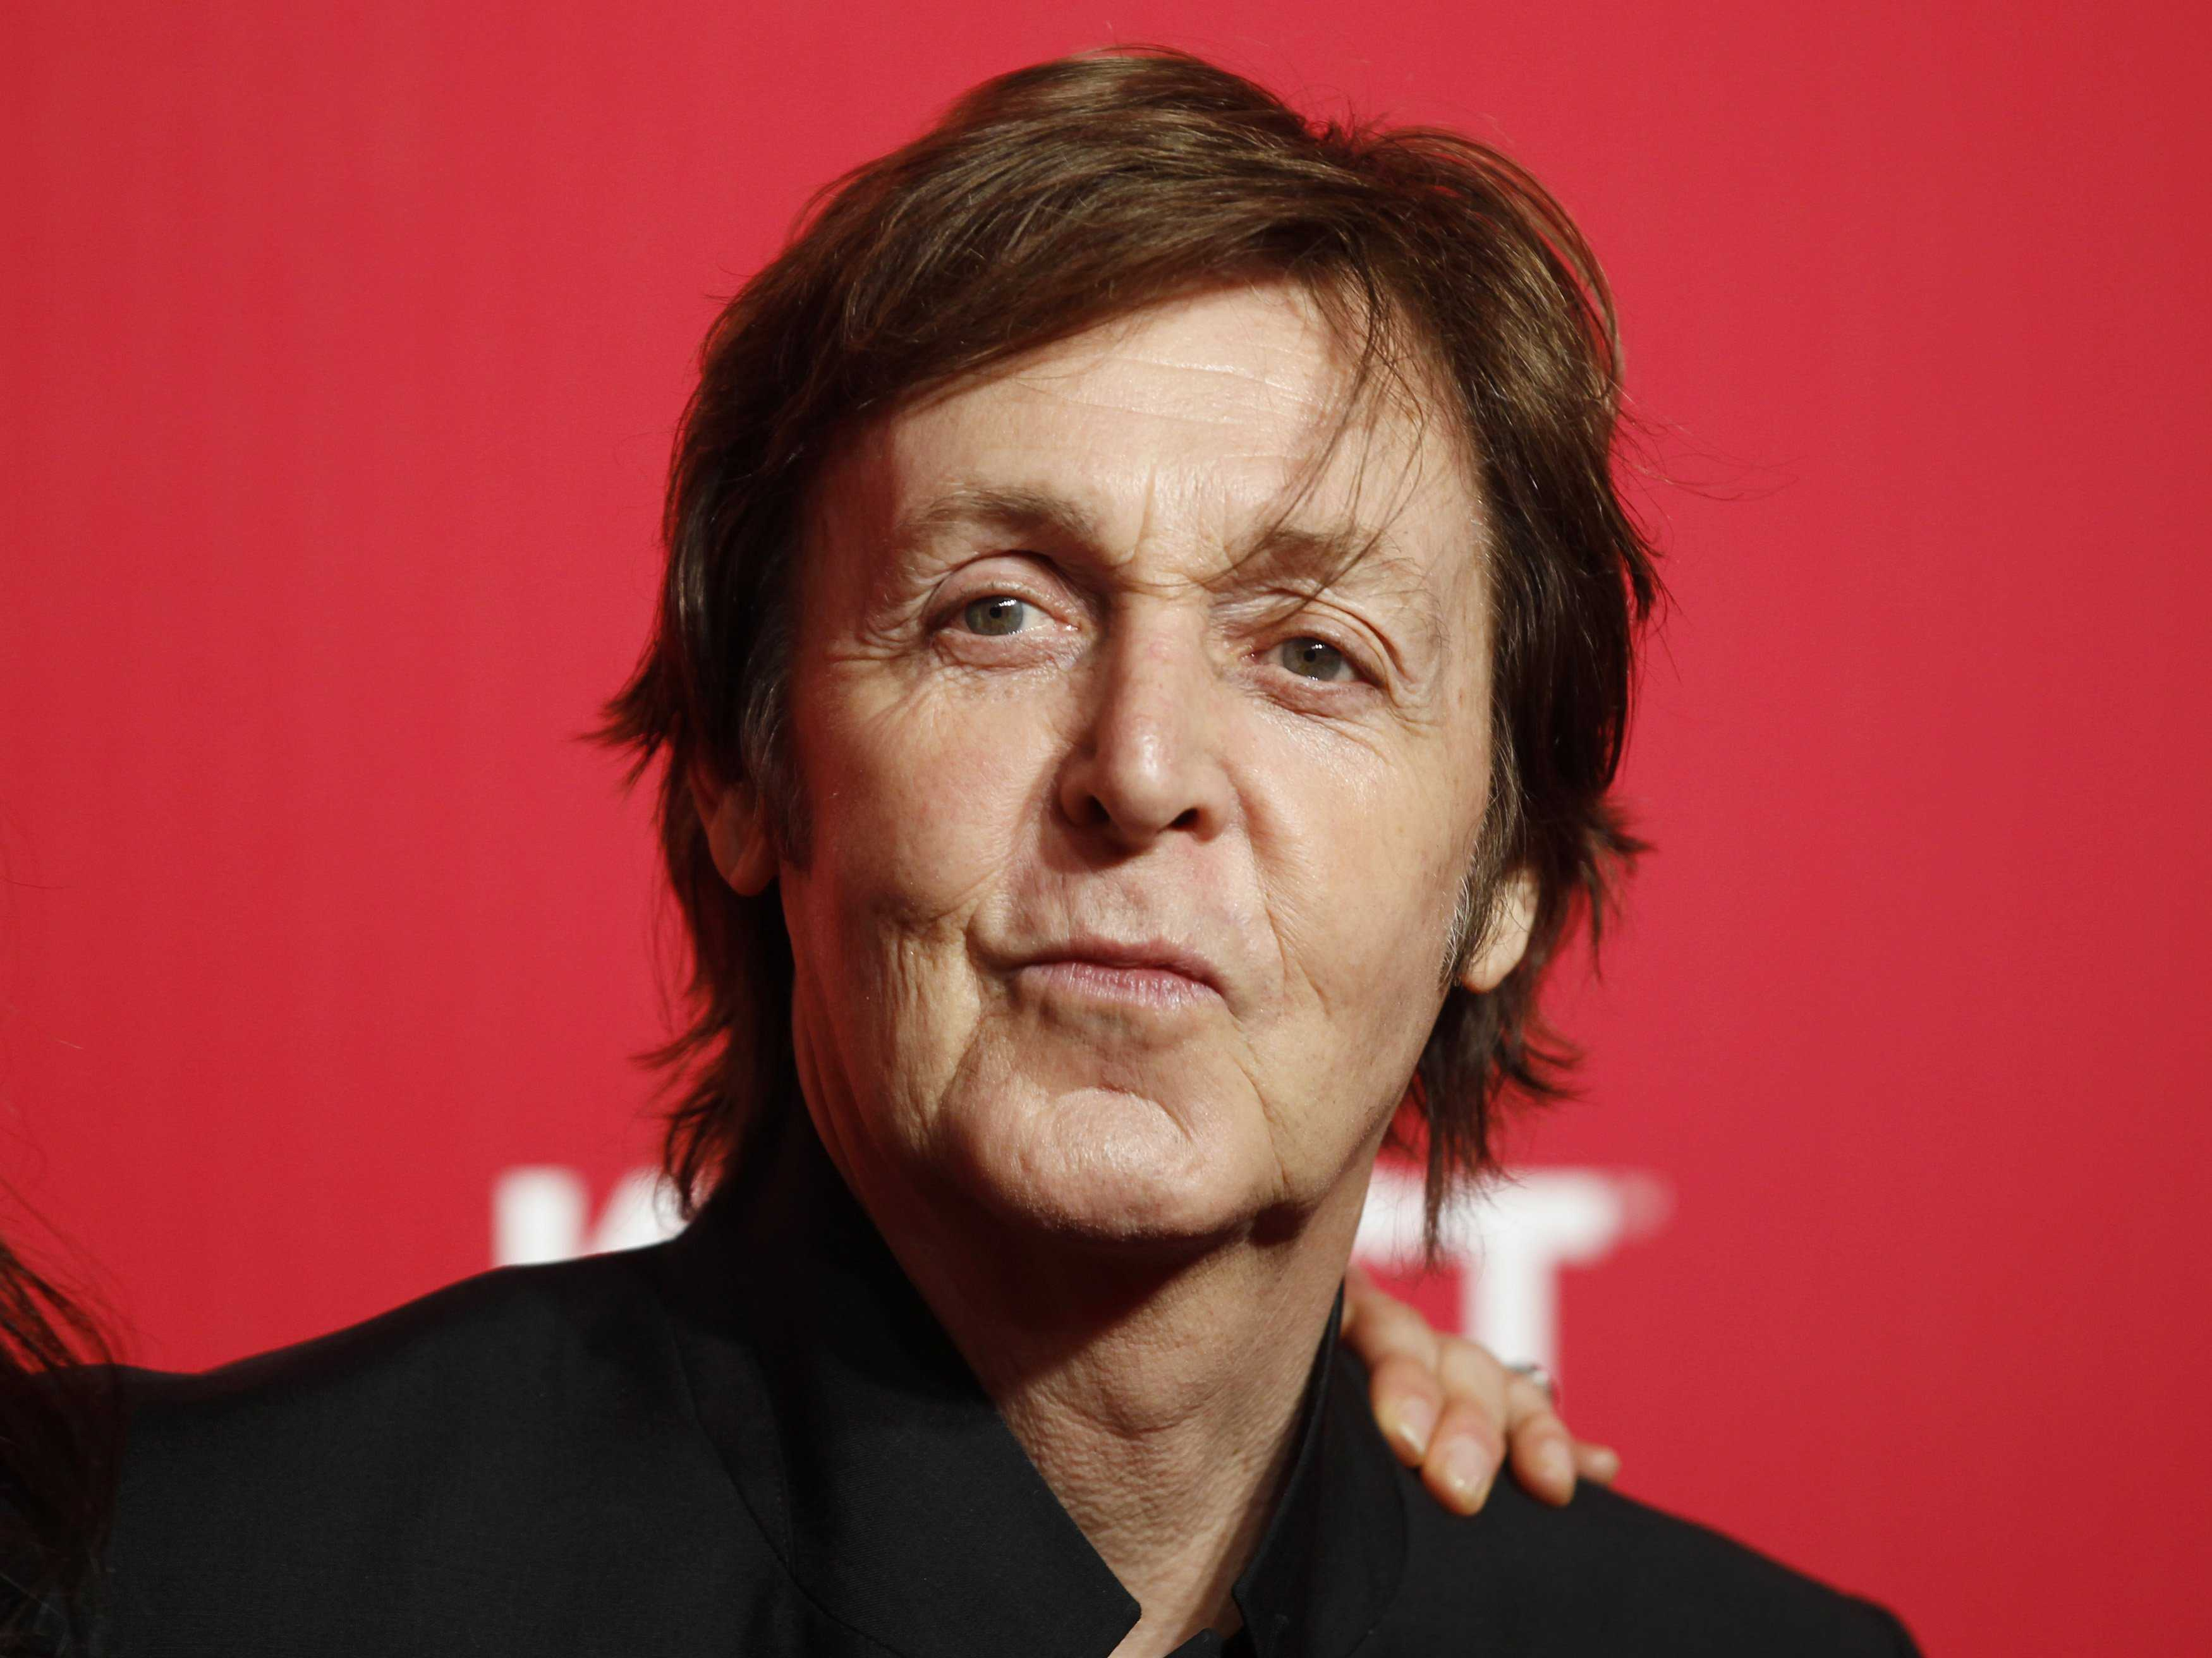 How Paul McCartney Remains At The Pinnacle Of Stardom